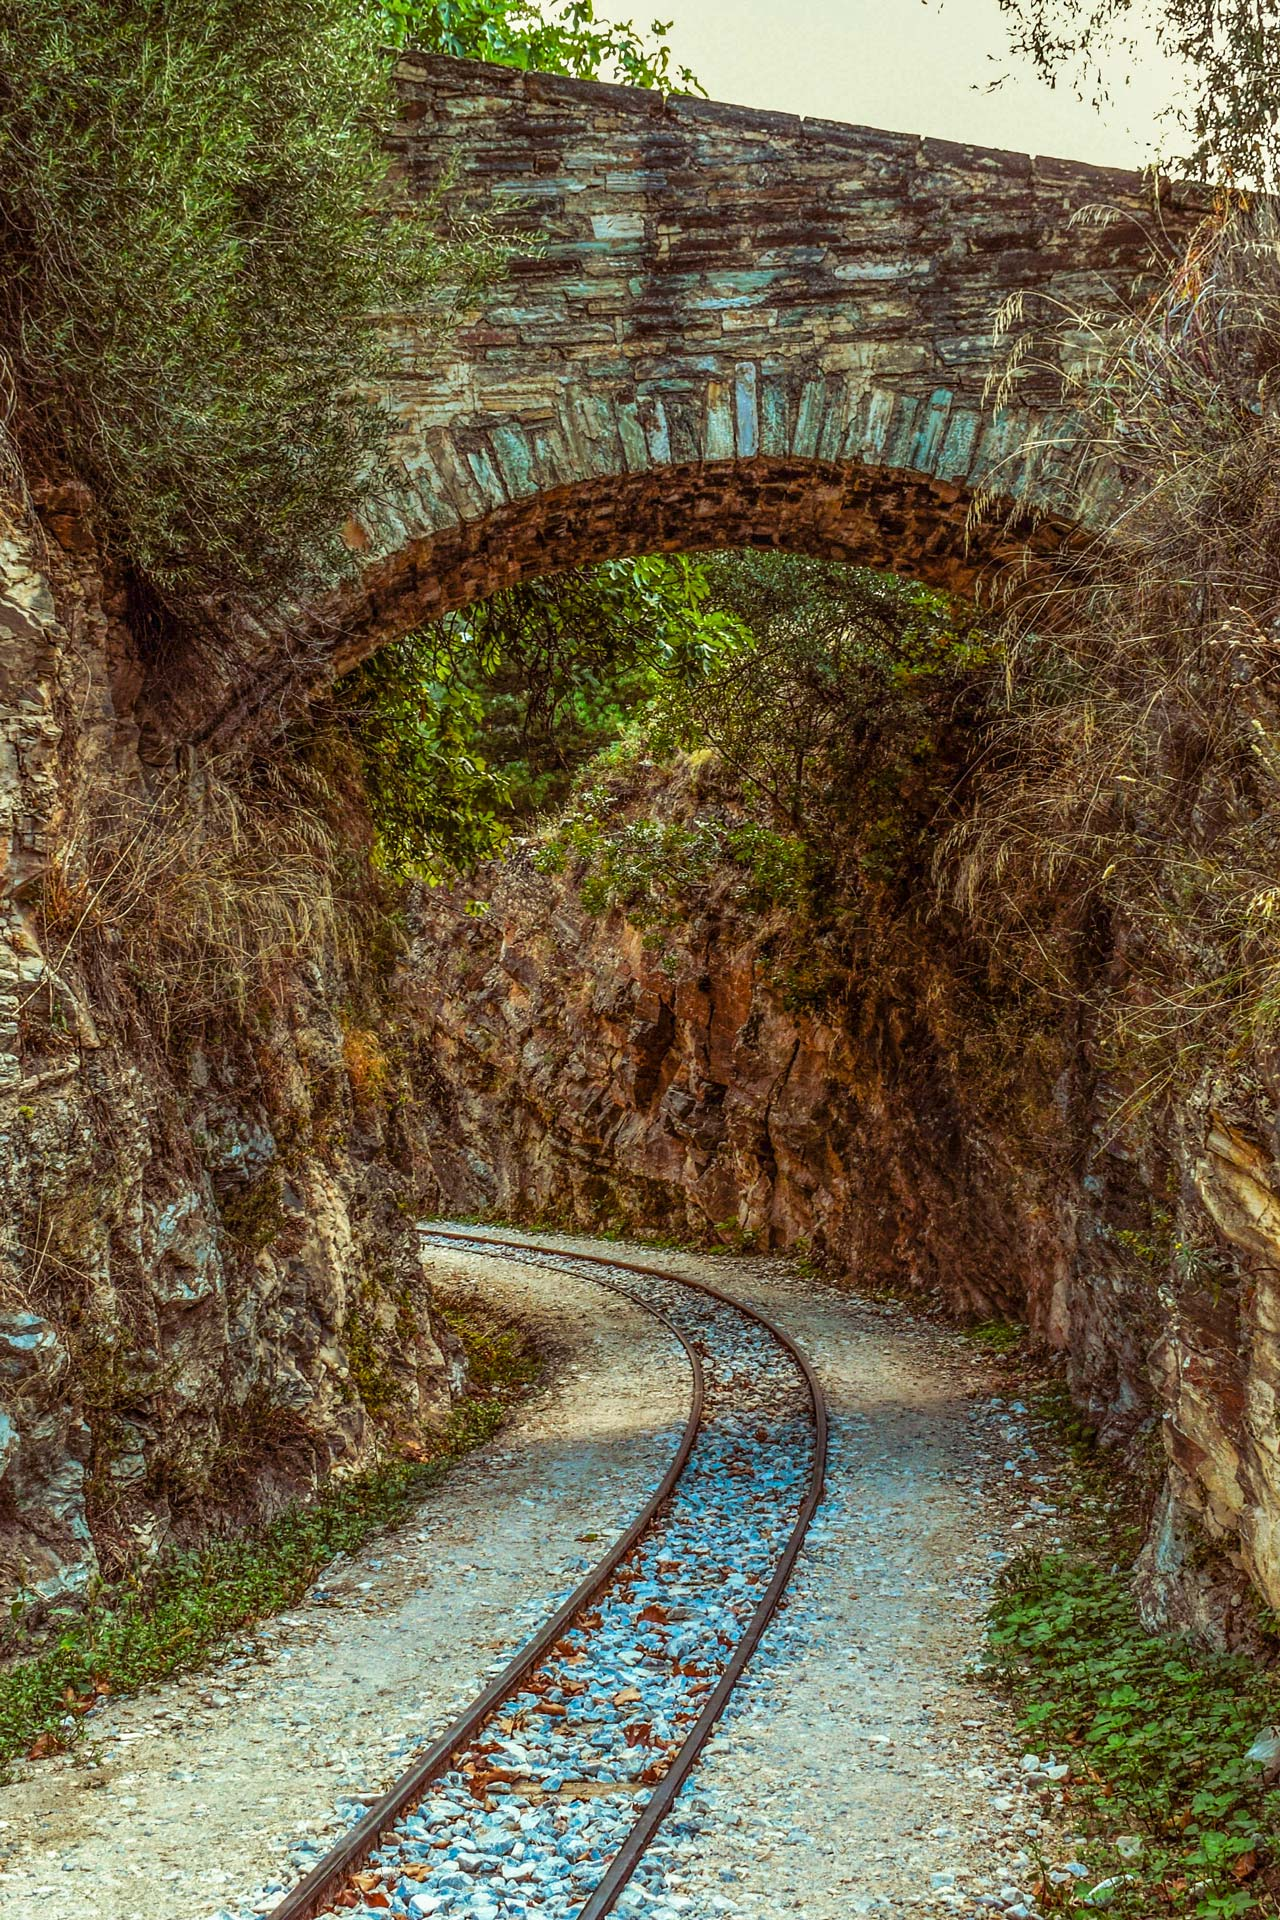 The path passes over arched bridges and through narrow tunnels and allowed previously remote communities to thrive